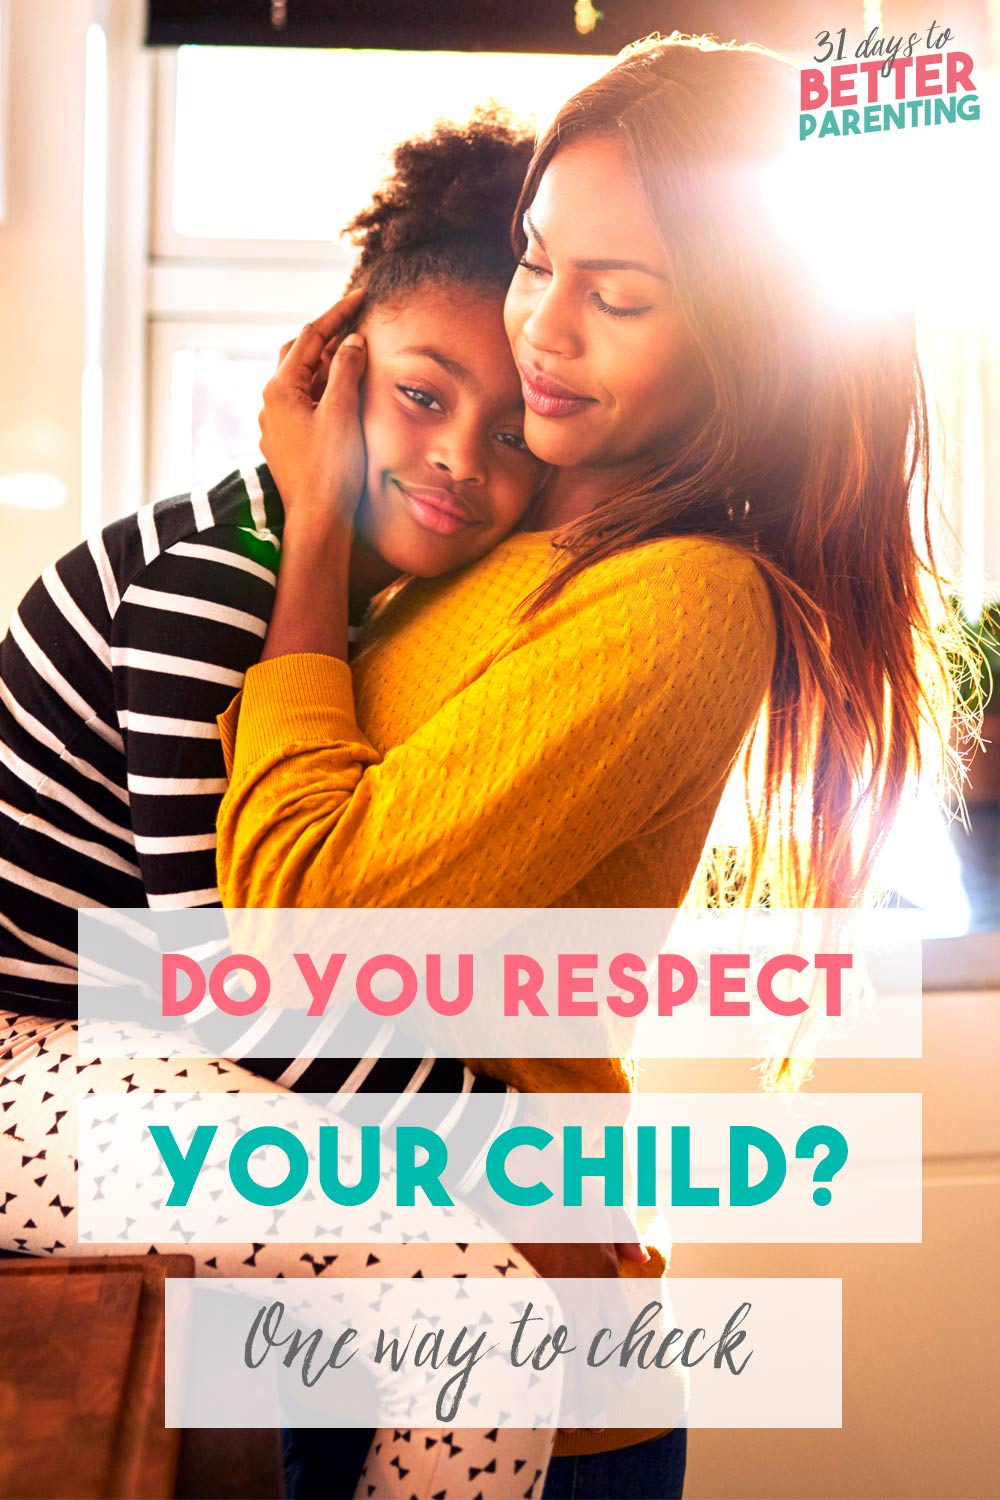 It's easy to overlook whether we're showing respect for kids. Want to know if you respect your children? Here's one guaranteed way to check.